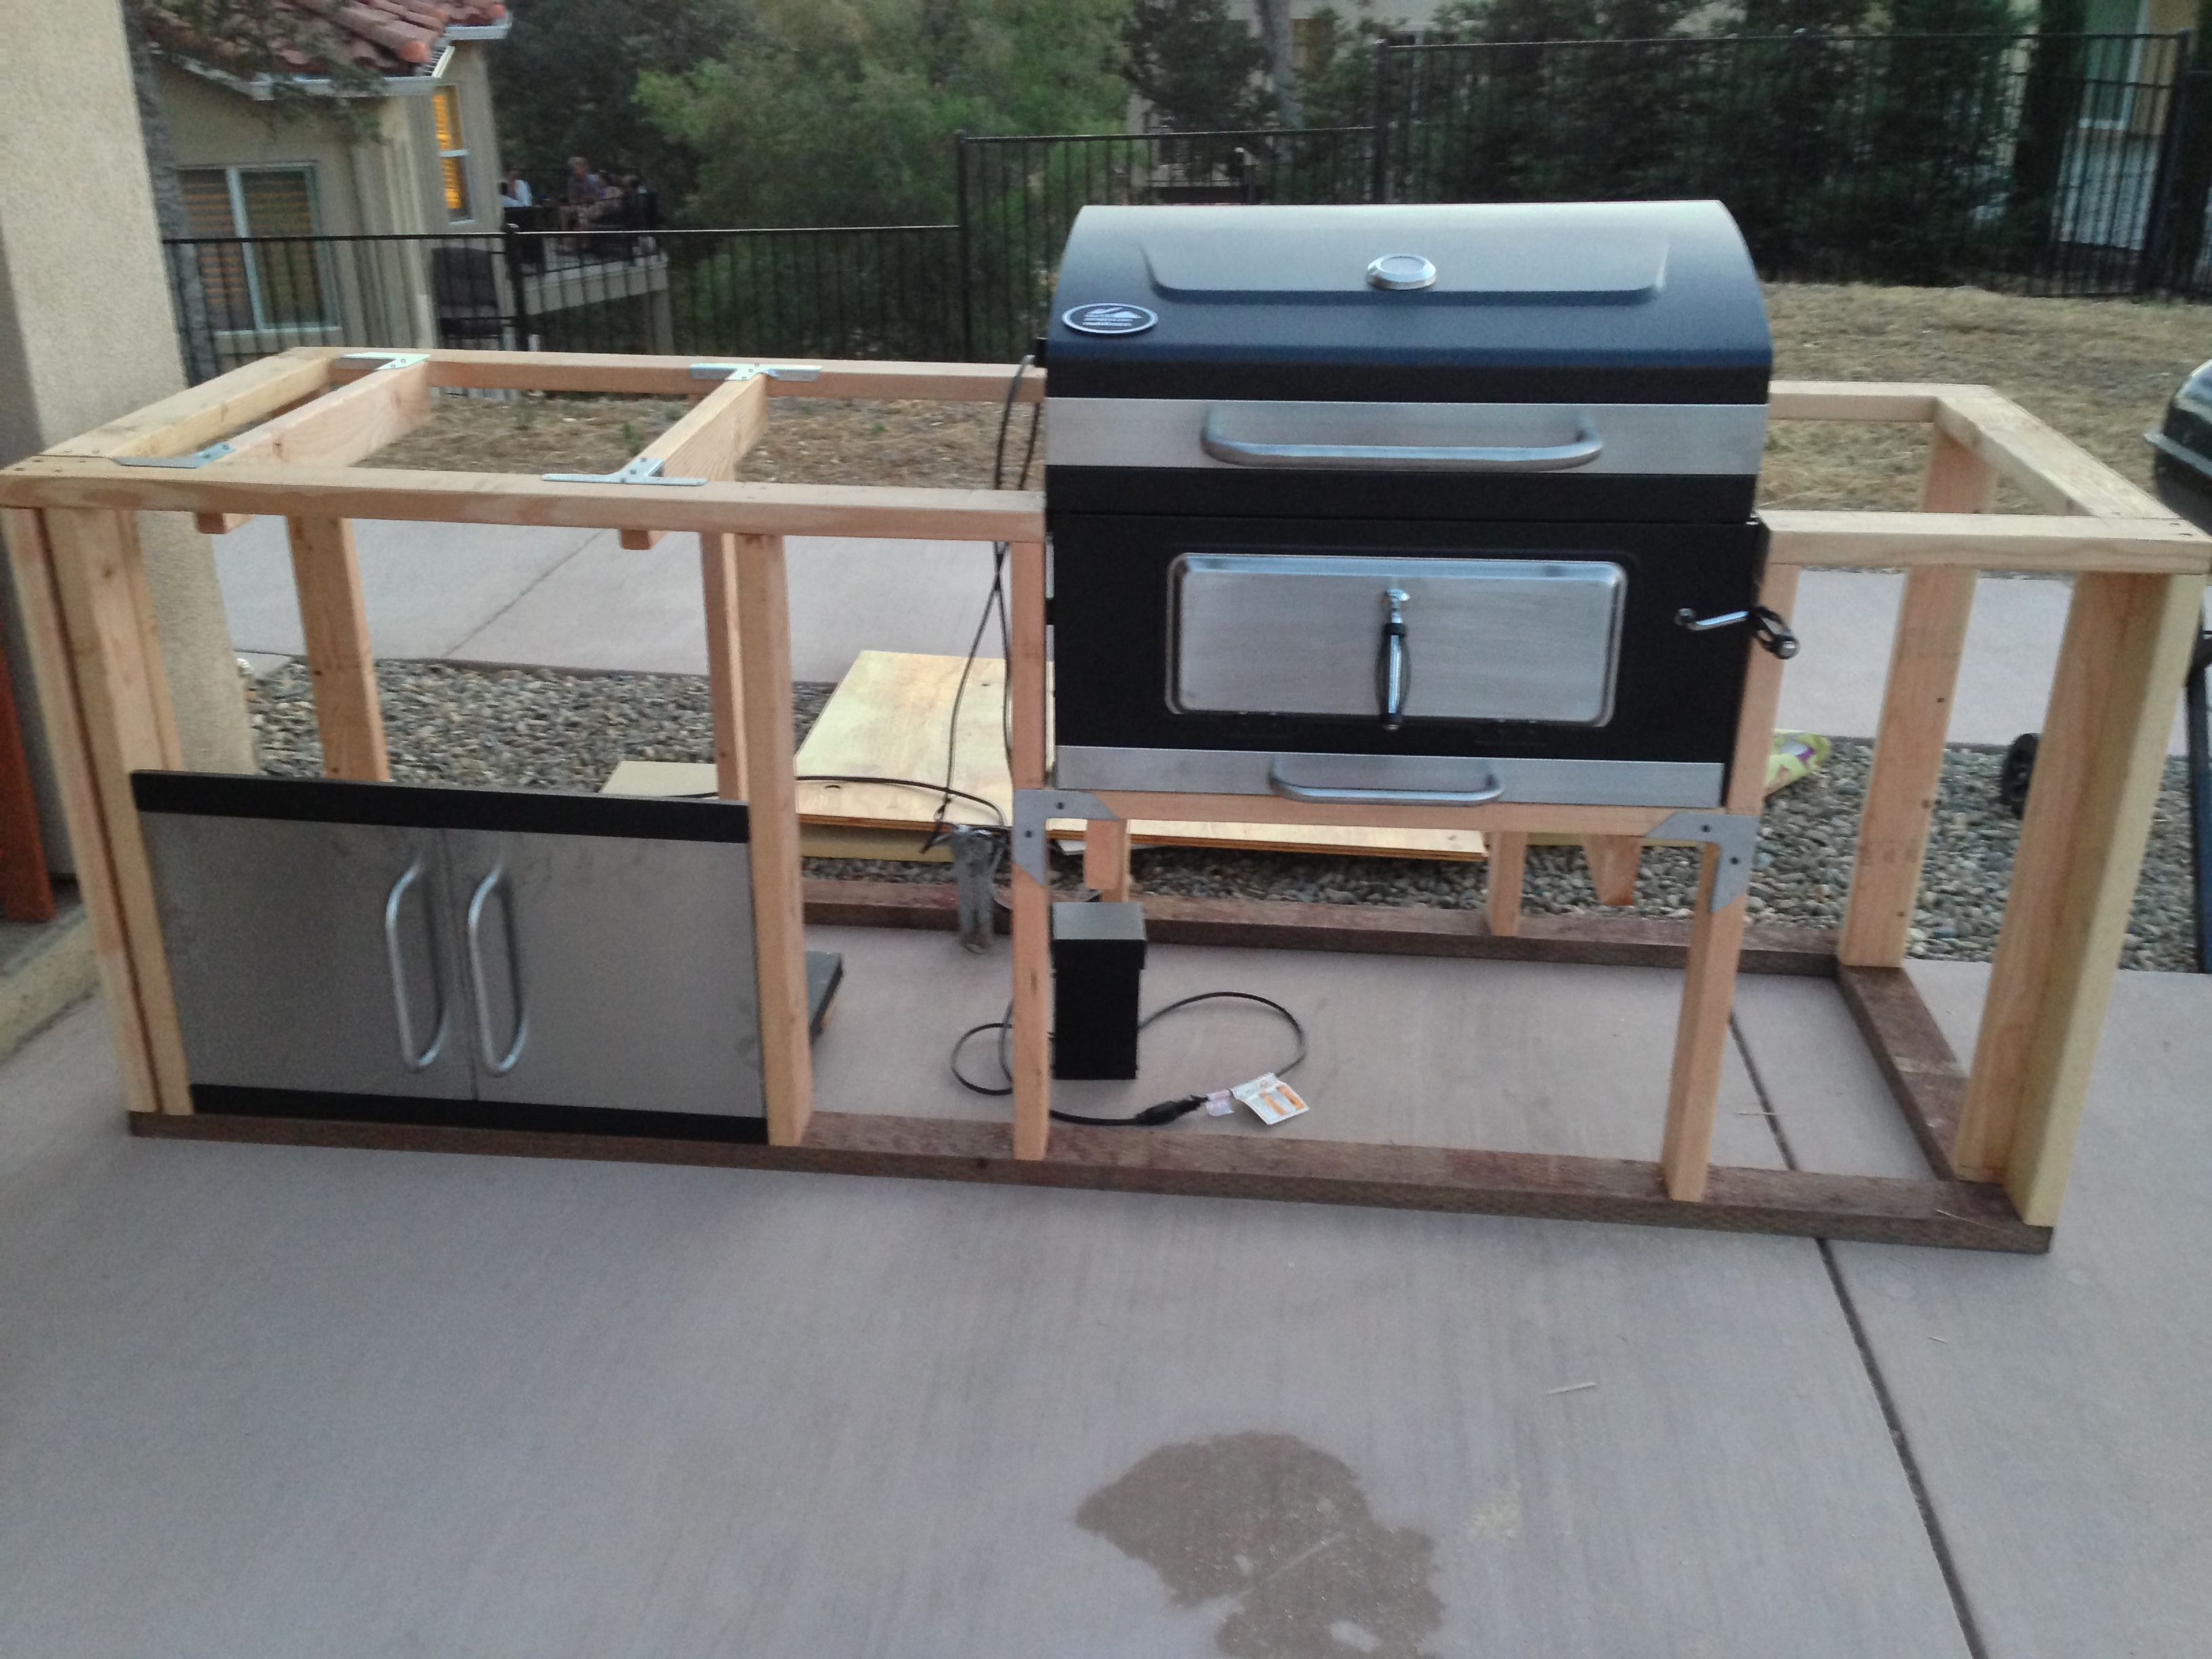 build your own outdoor kitchen island bakers racks for it 39s started i took apart the charcoal grill and its